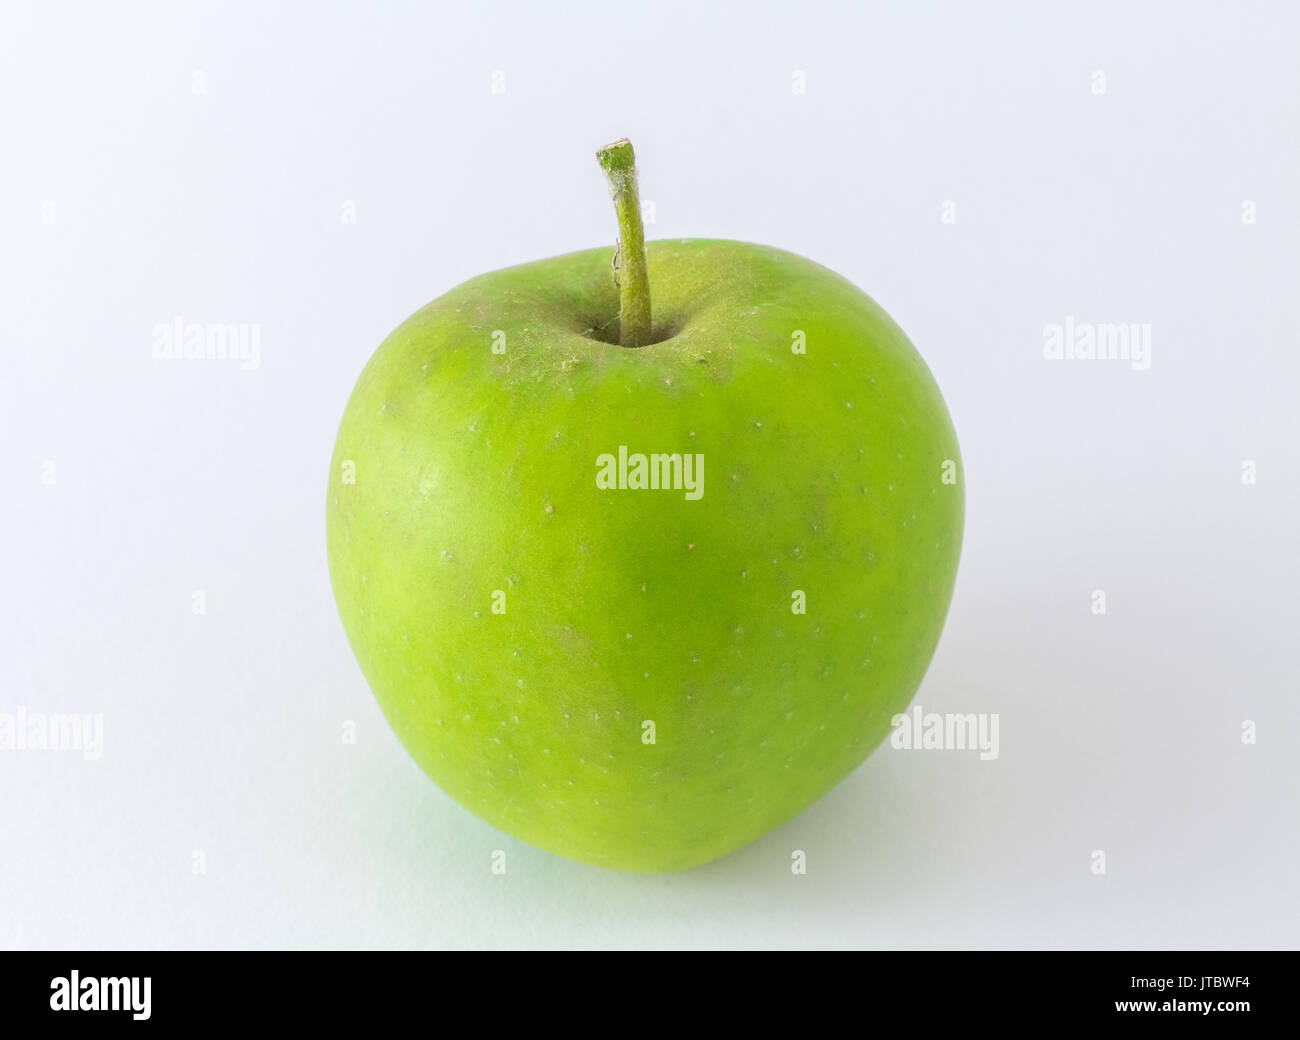 Apple Green Apple isolated on White Background - Stock Image